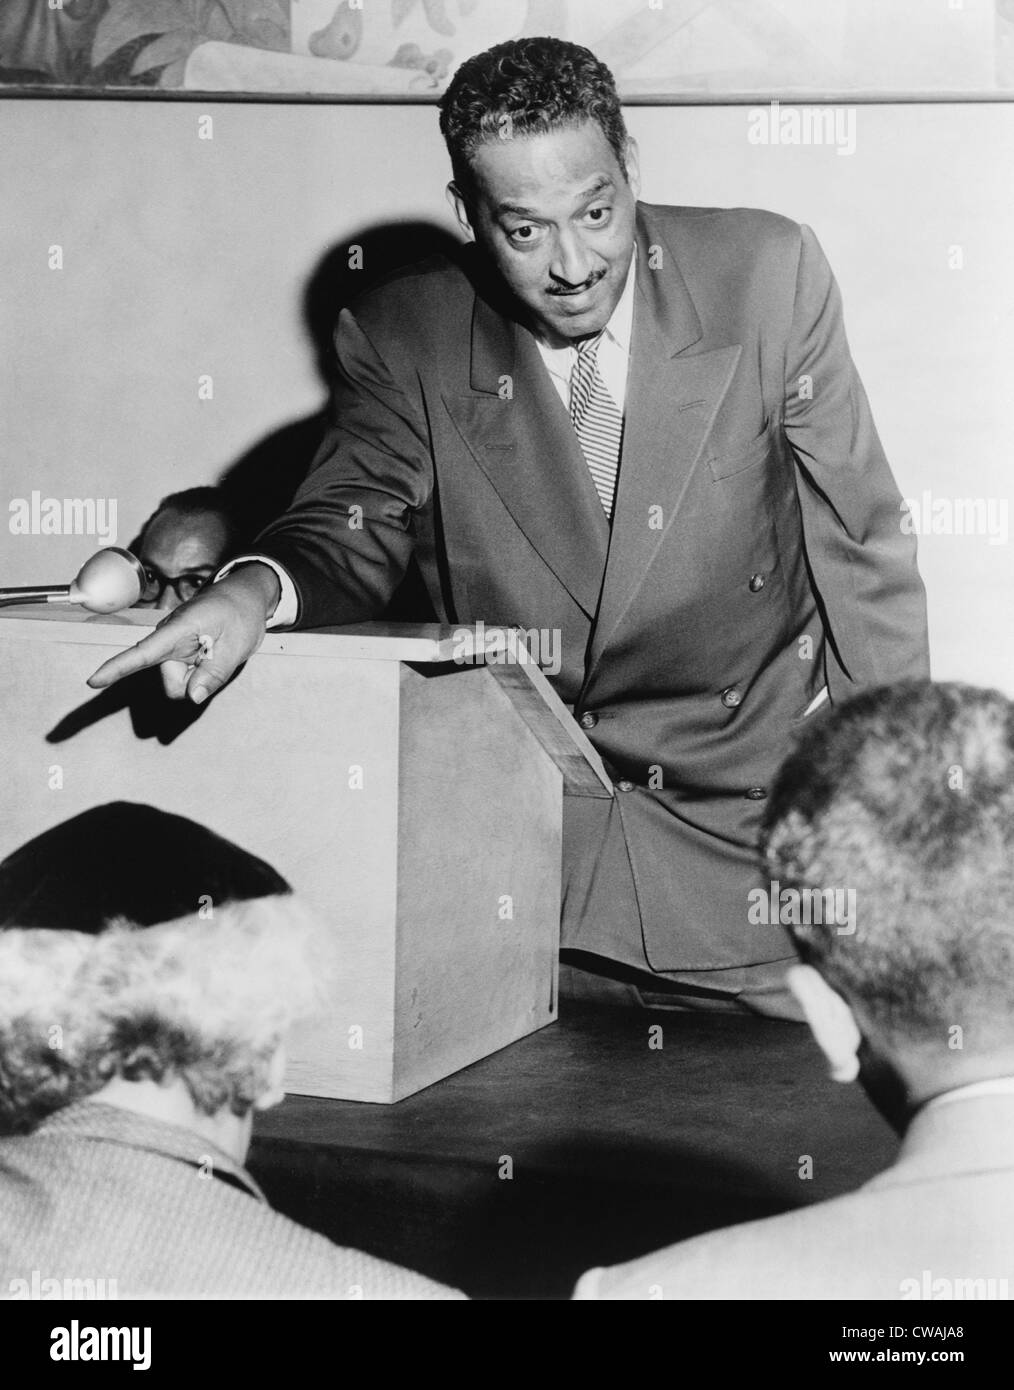 Thurgood Marshall (1908-1993), Chief Counsel for the National Assn. for the Advancement of Colored People, talking - Stock Image